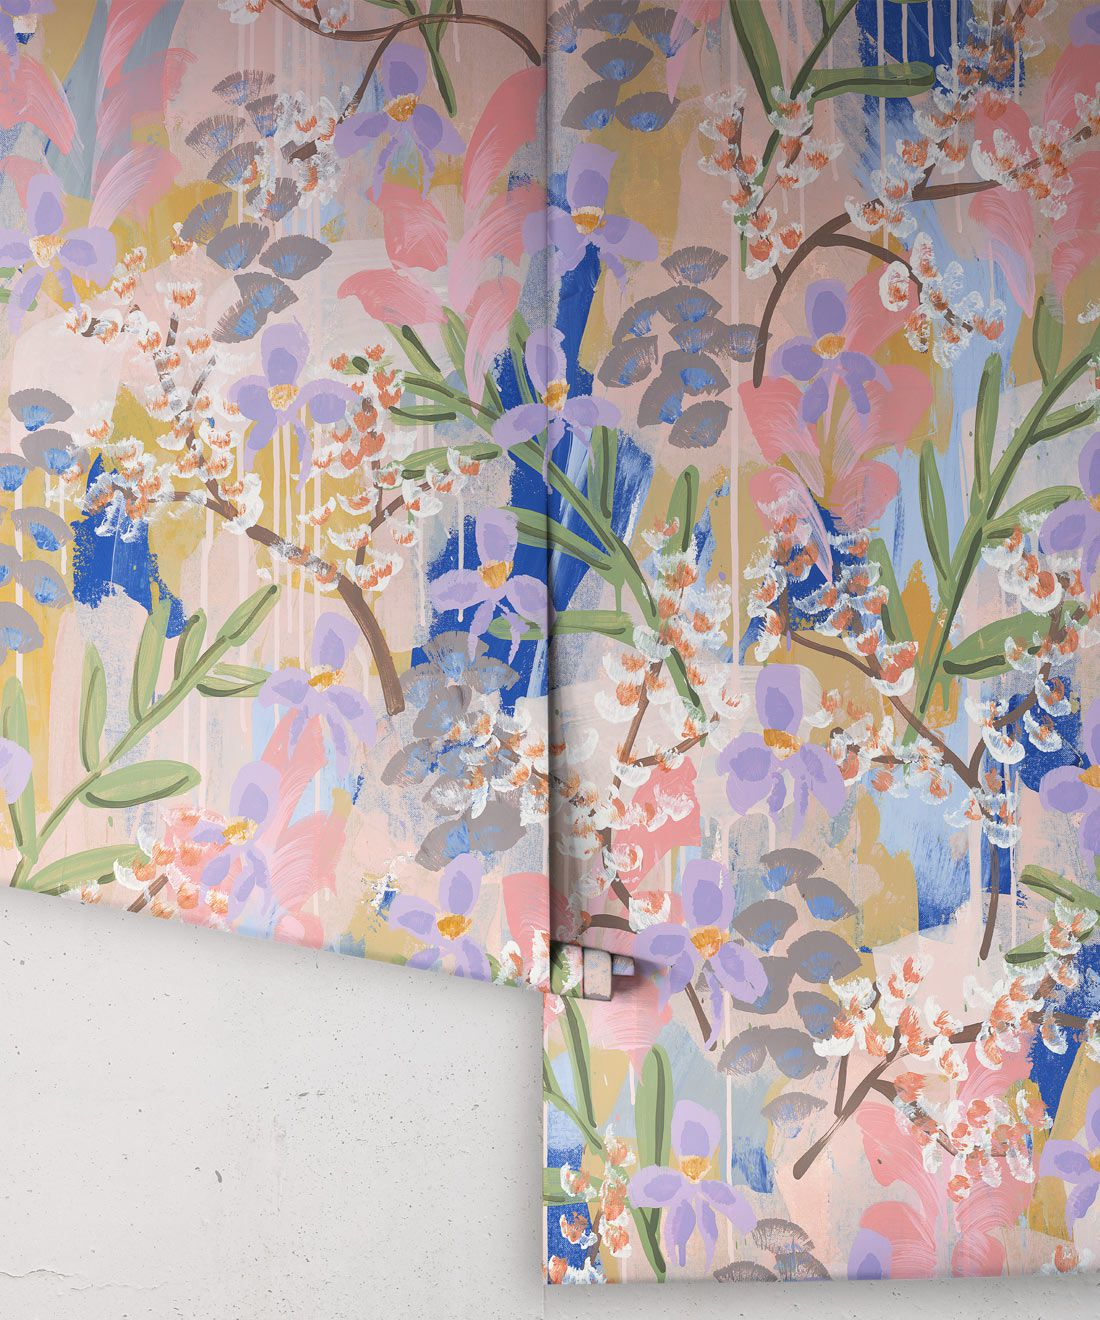 Daphne Wallpaper •Colorful Floral Wallpaper • Tiff Manuell • Abstract Expressionist Wallpaper • Rolls